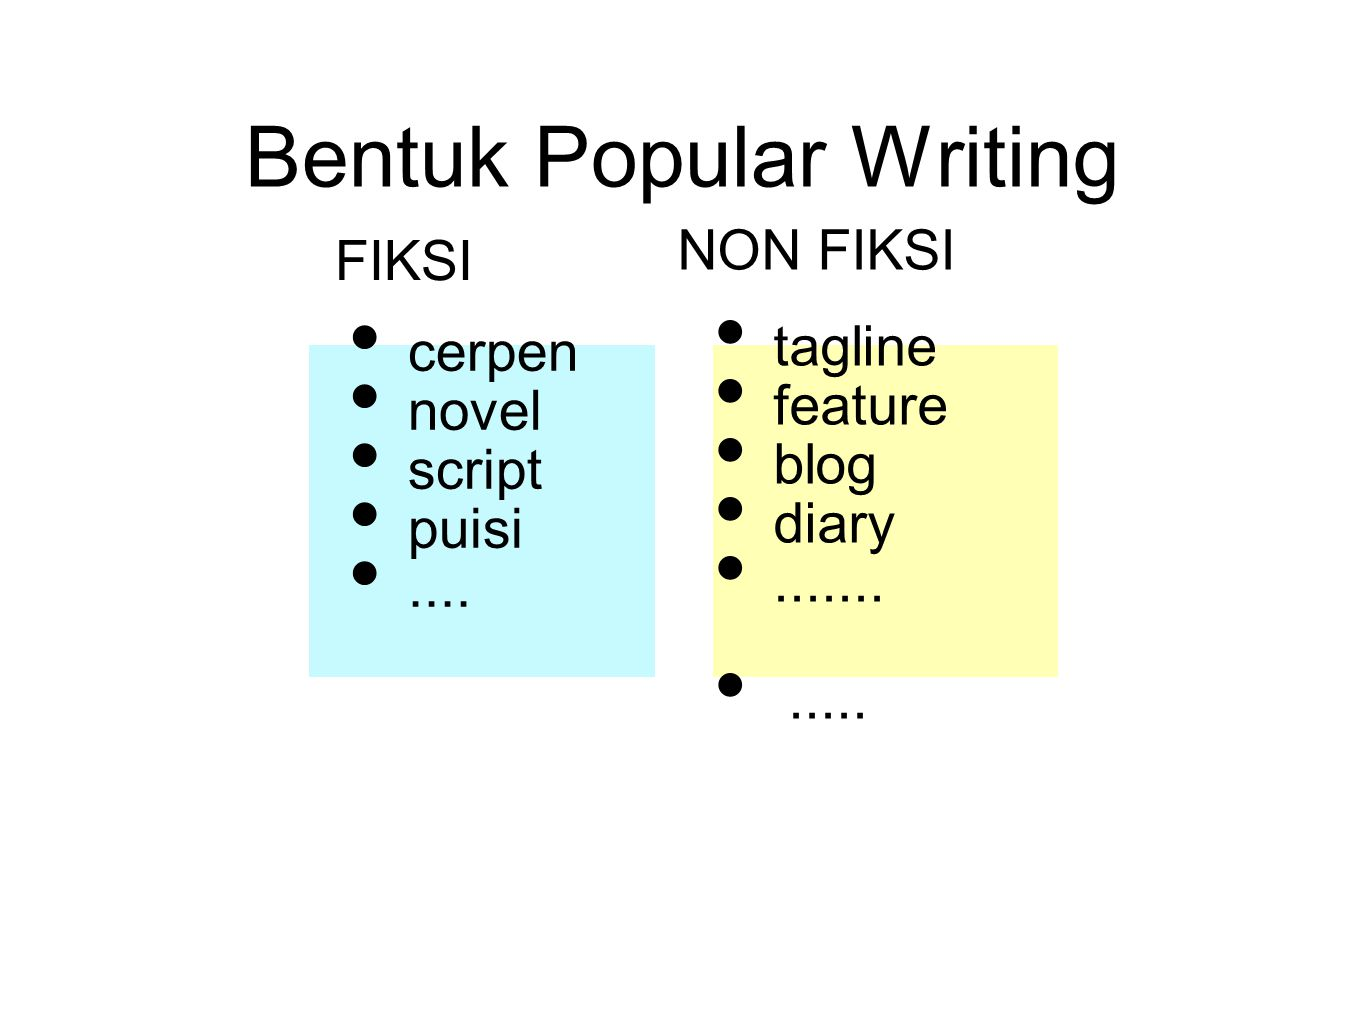 Bentuk Popular Writing cerpen novel script puisi.... tagline feature blog diary............ FIKSI NON FIKSI